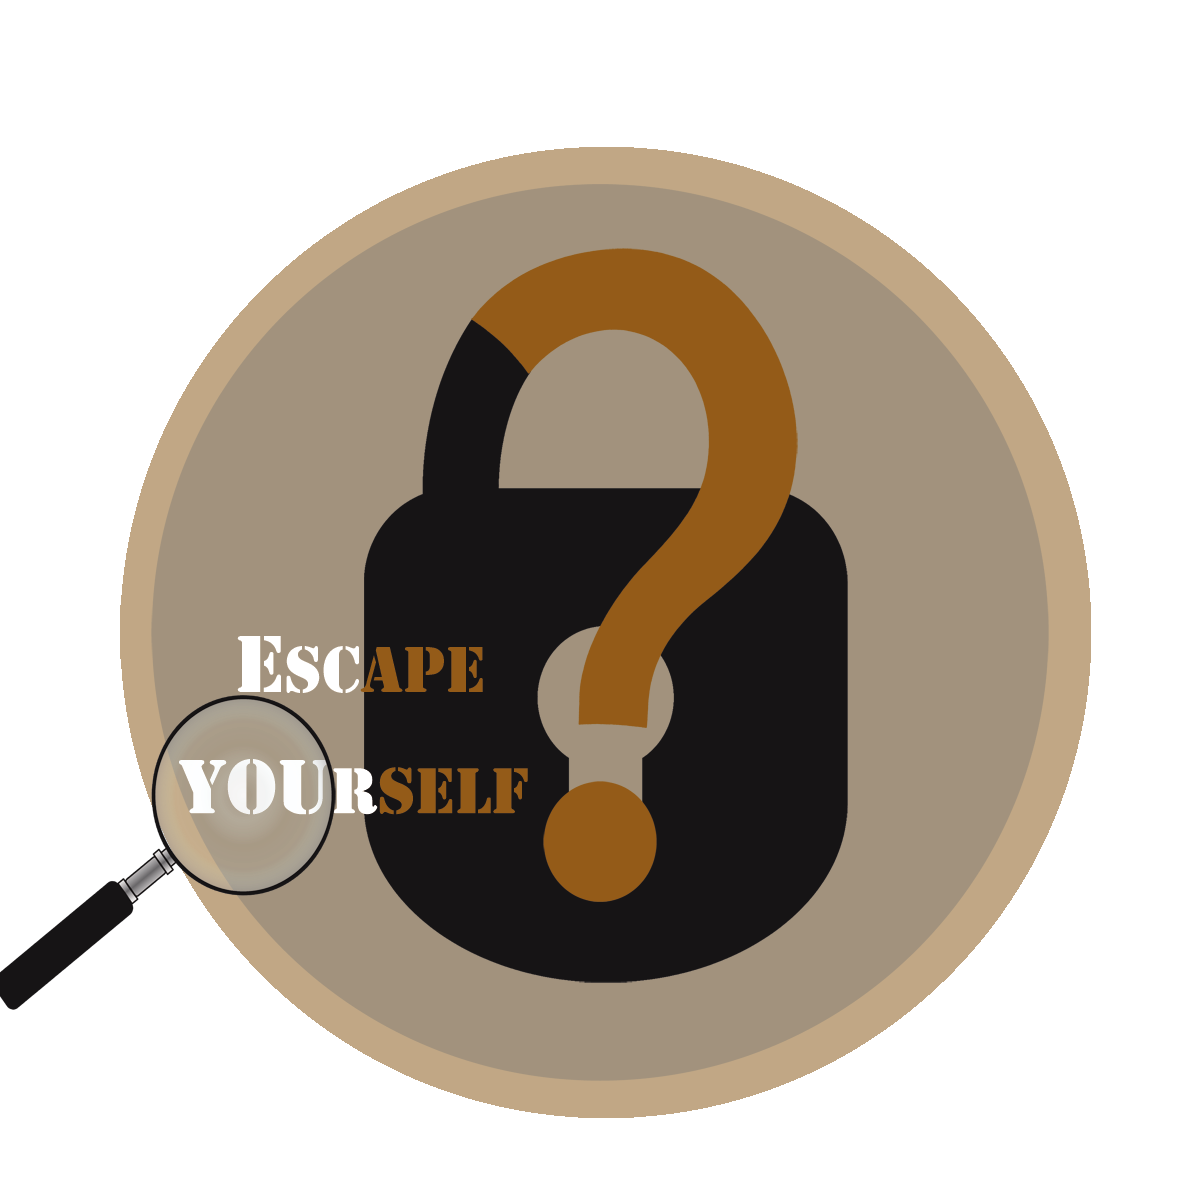 Escape Yourself Pornichet